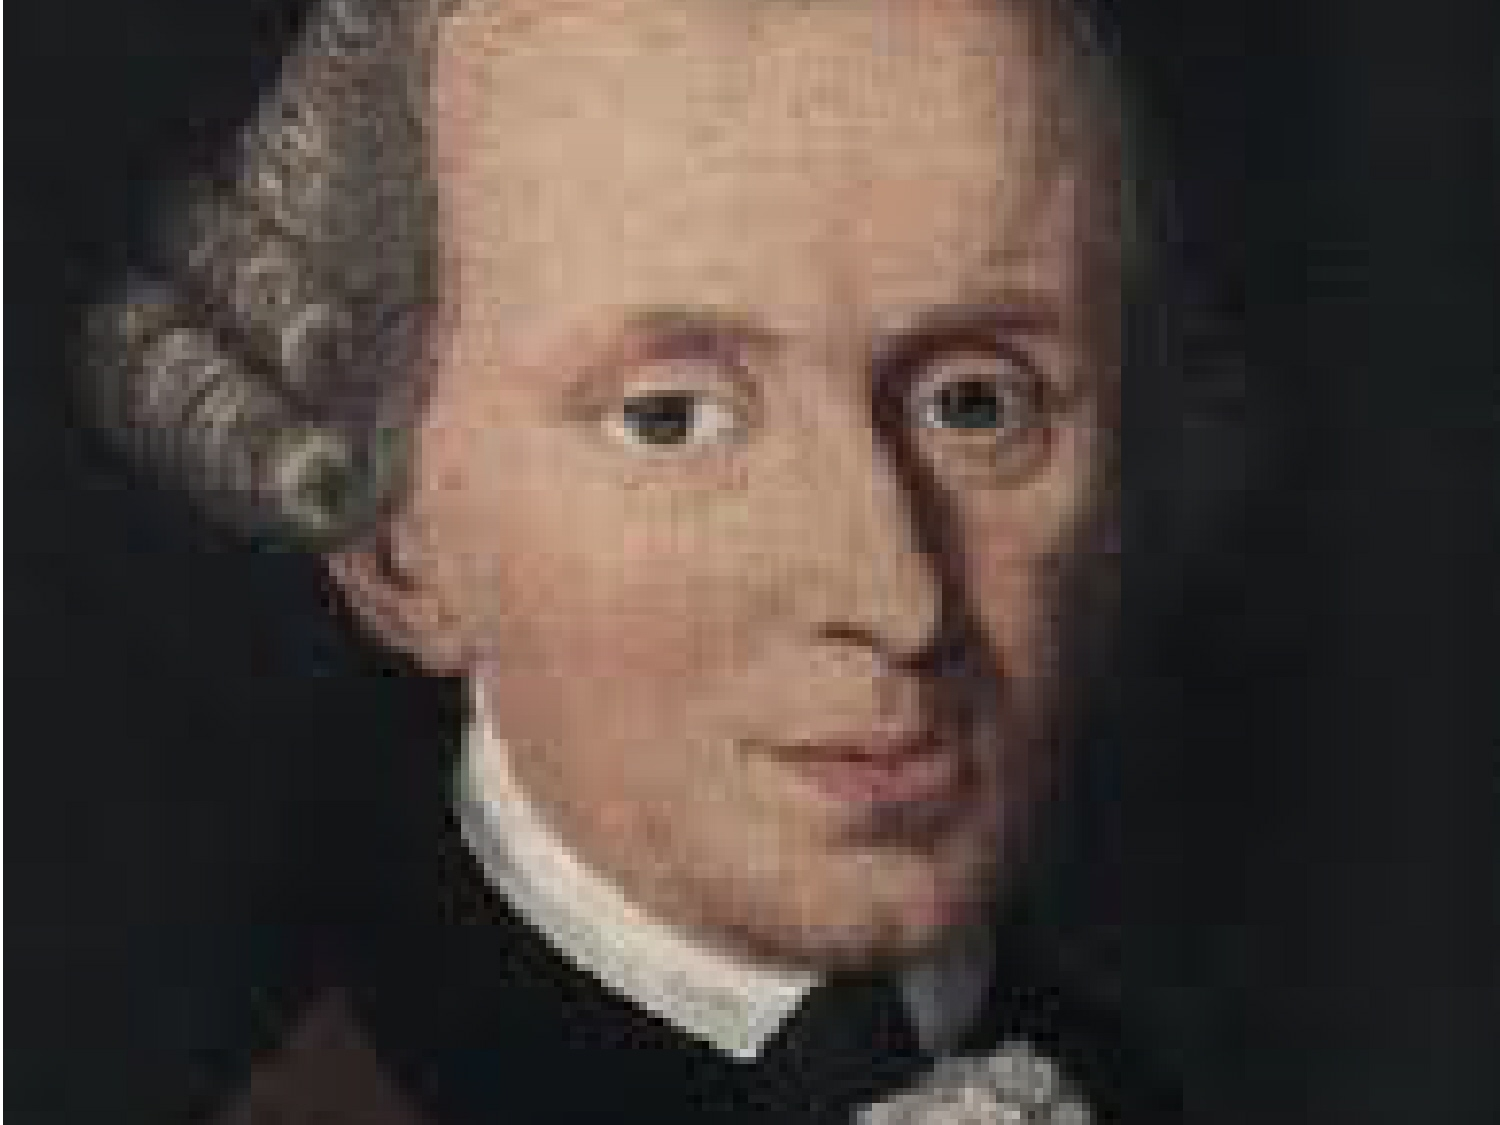 kant and categorical imperatives essay words state briefly kants categorical imperative essay